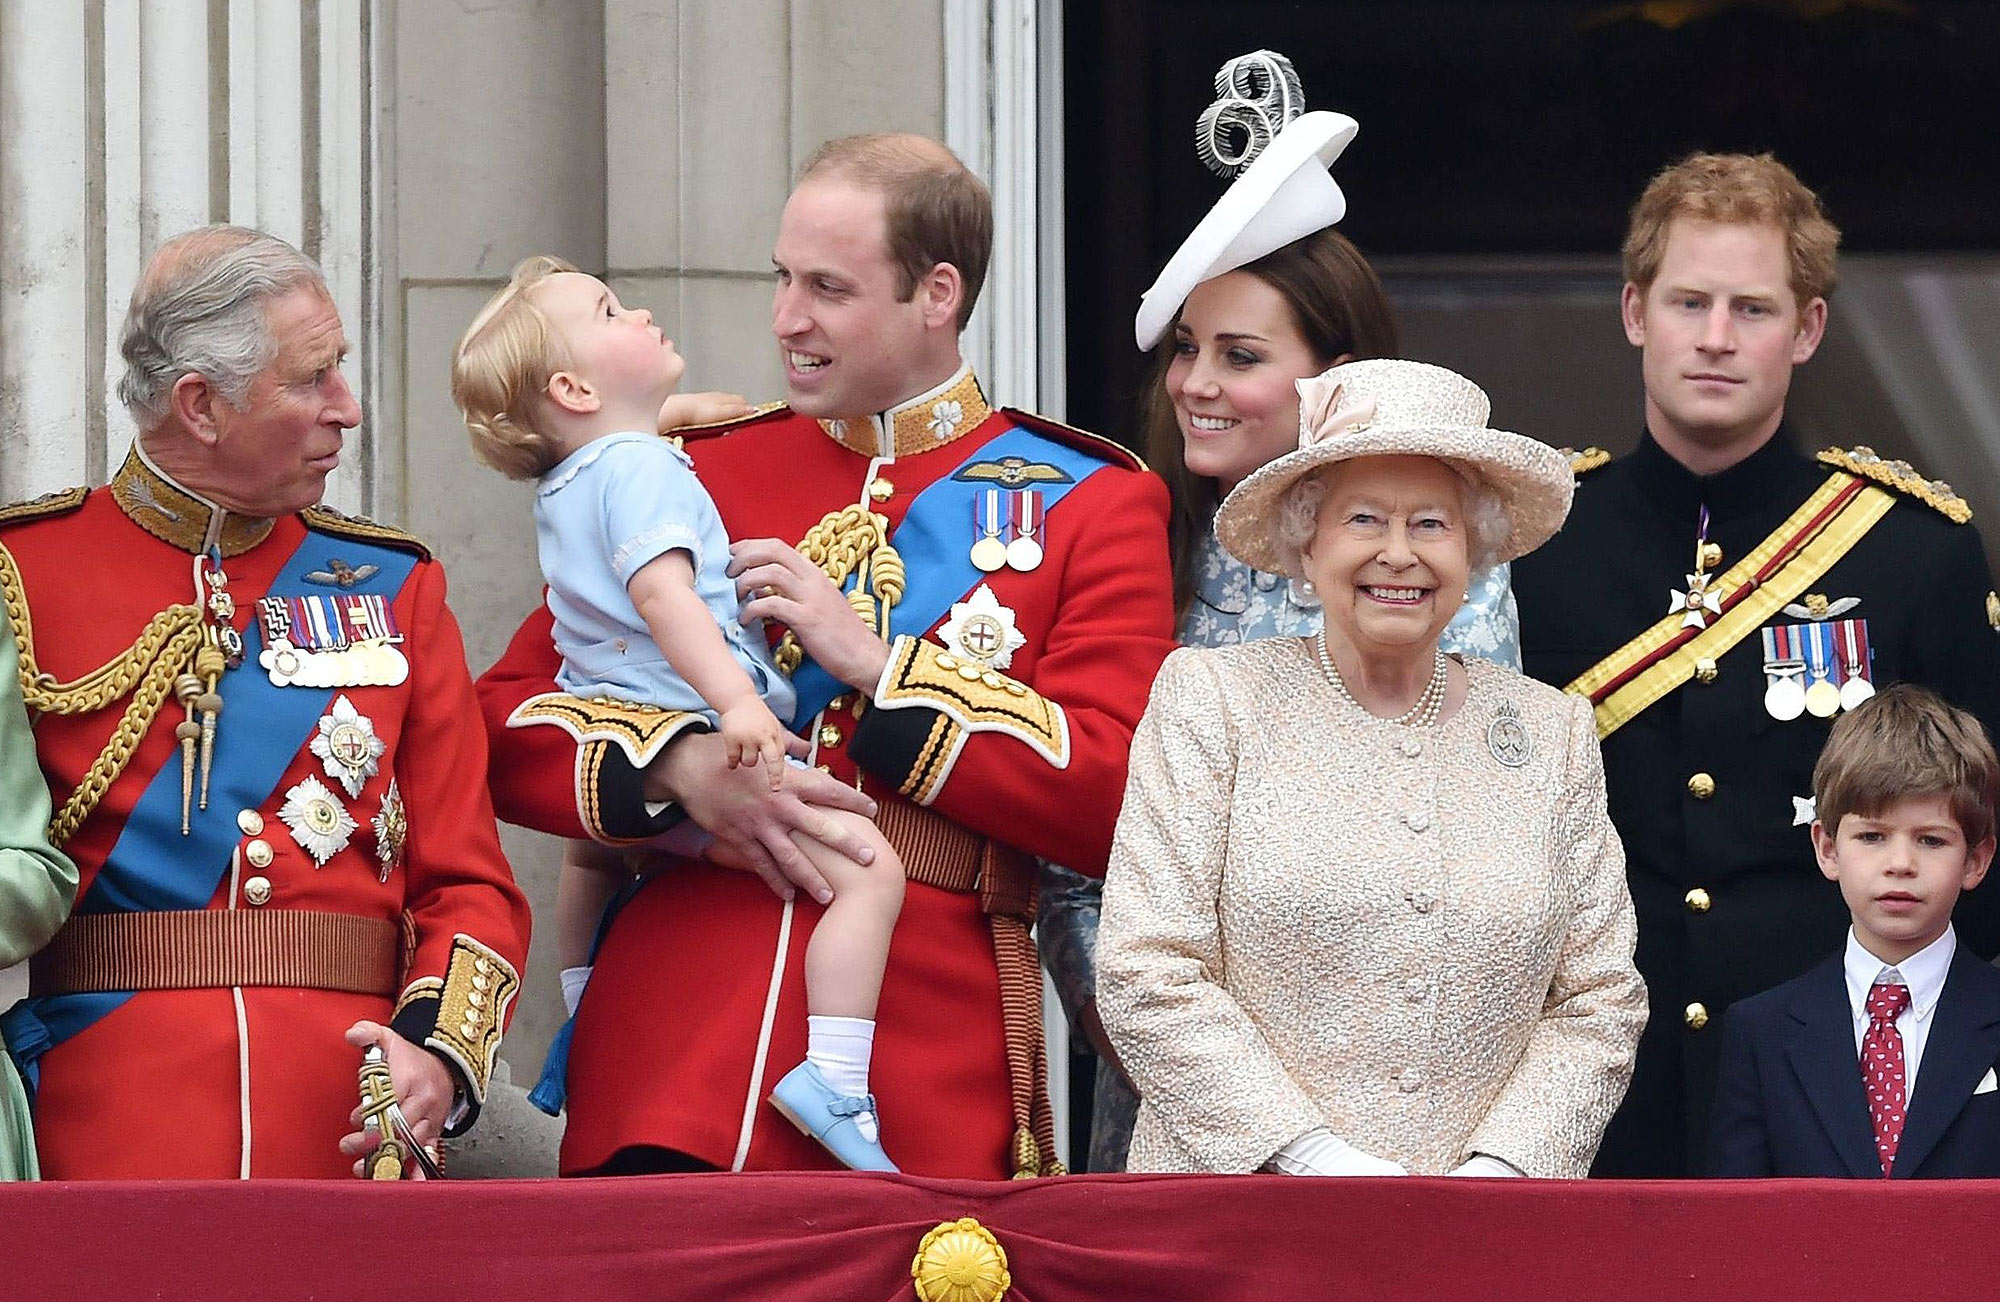 Mandatory Credit: Photo by Tim Rooke/REX Shutterstock (2735684by) Prince Charles, Prince William, Prince George, Catherine Duchess of Cambridge, Queen Elizabeth II, Prince Harry and James Viscount Severn Trooping the Colour ceremony, London, Britain - 13 Jun 2015